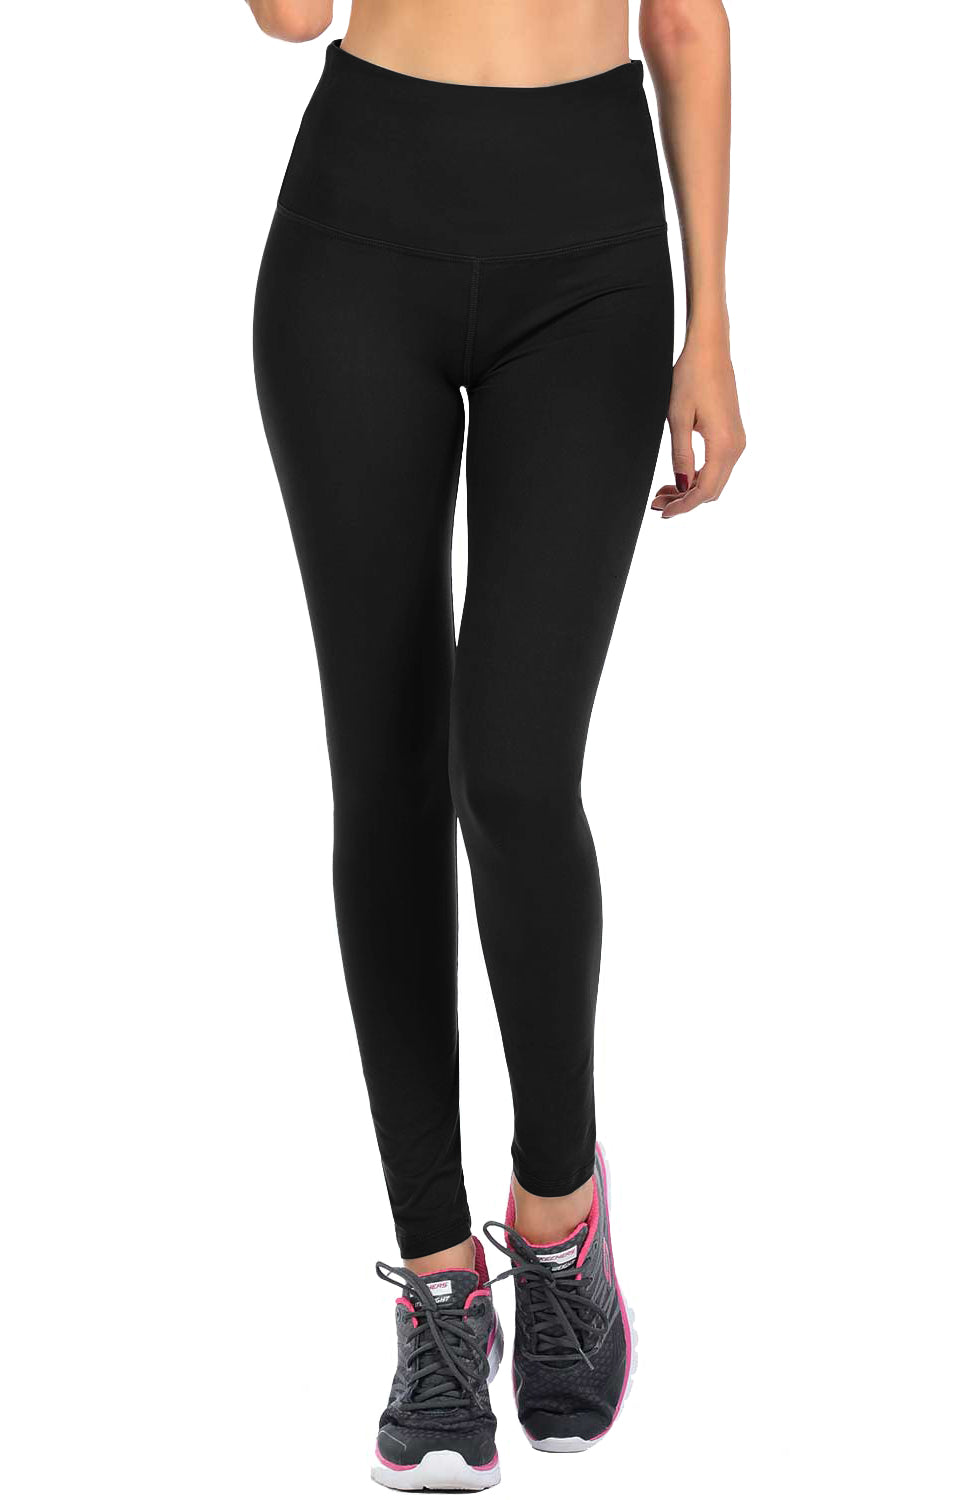 04a46c8eddb VIV Collection Signature Leggings Ultra Soft YOGA Waistband w  Hidden Pocket